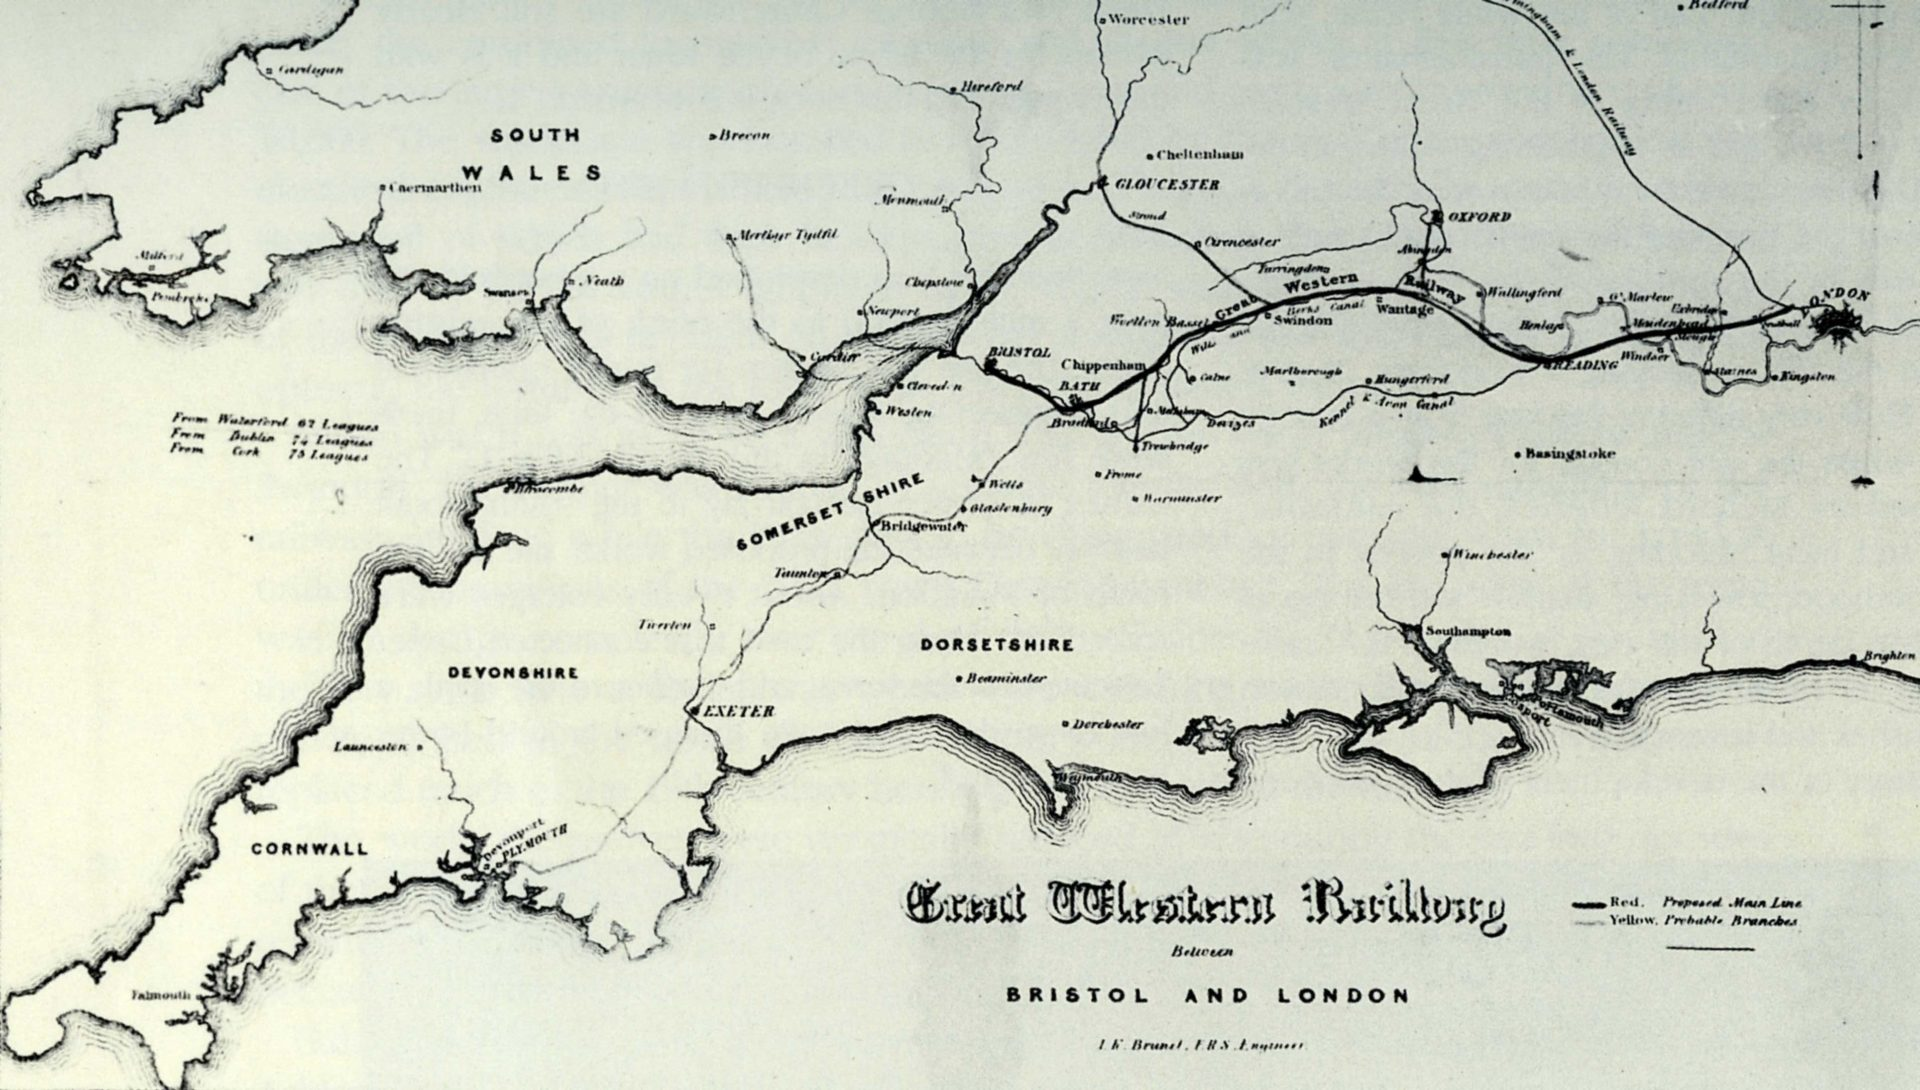 The GWR line